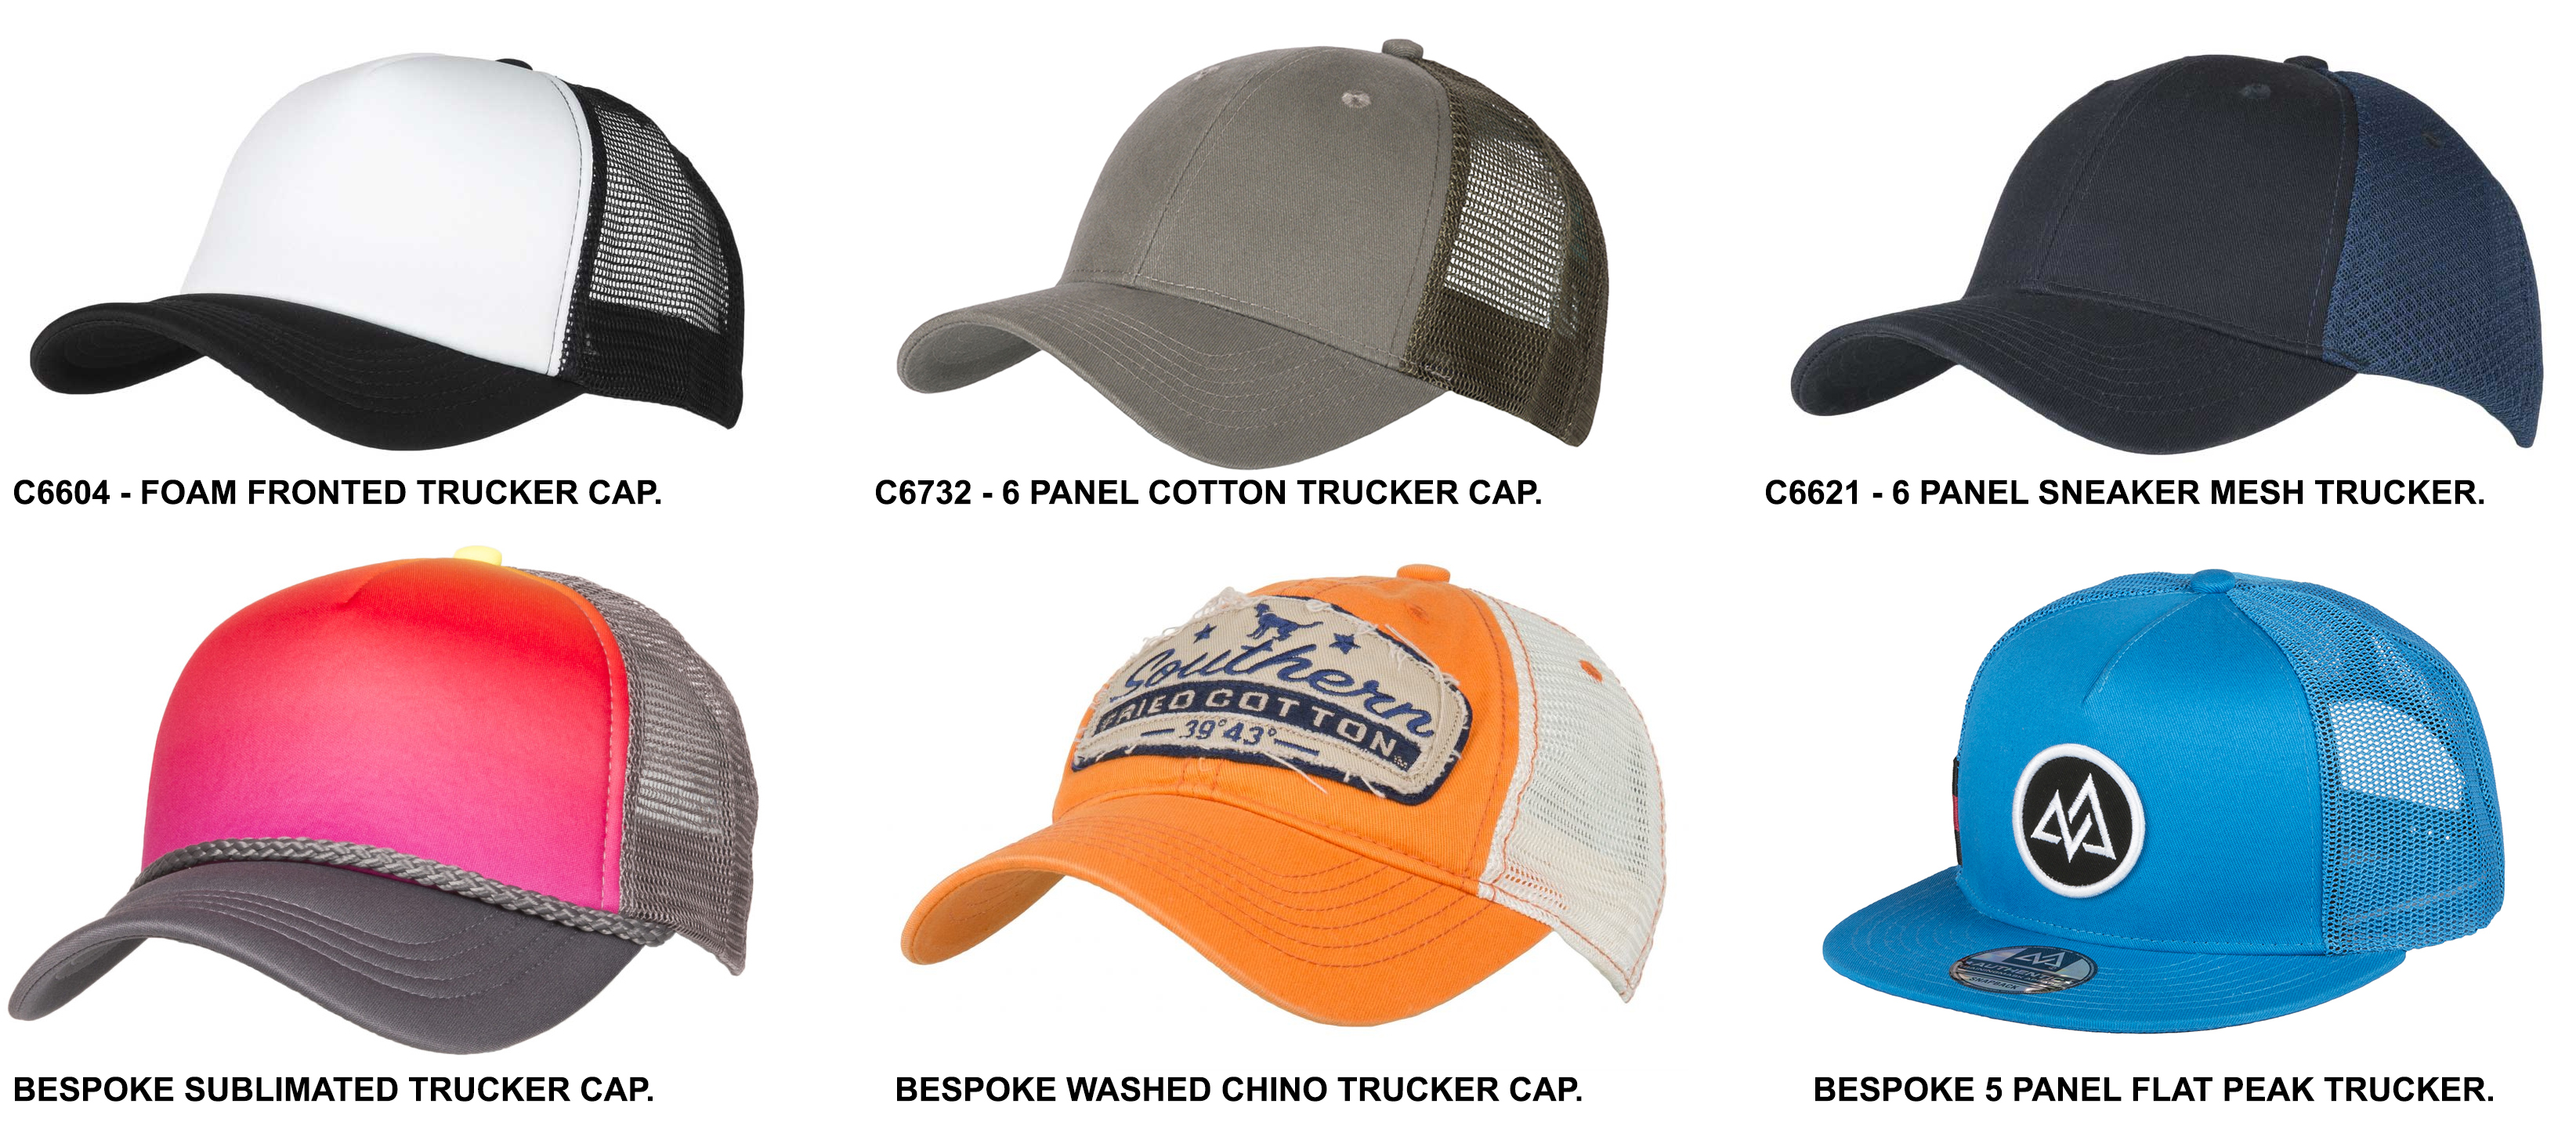 STOCK AND BESPOKE TRUCKER CAPS - Sharon Lee Ltd df7e3ad8165